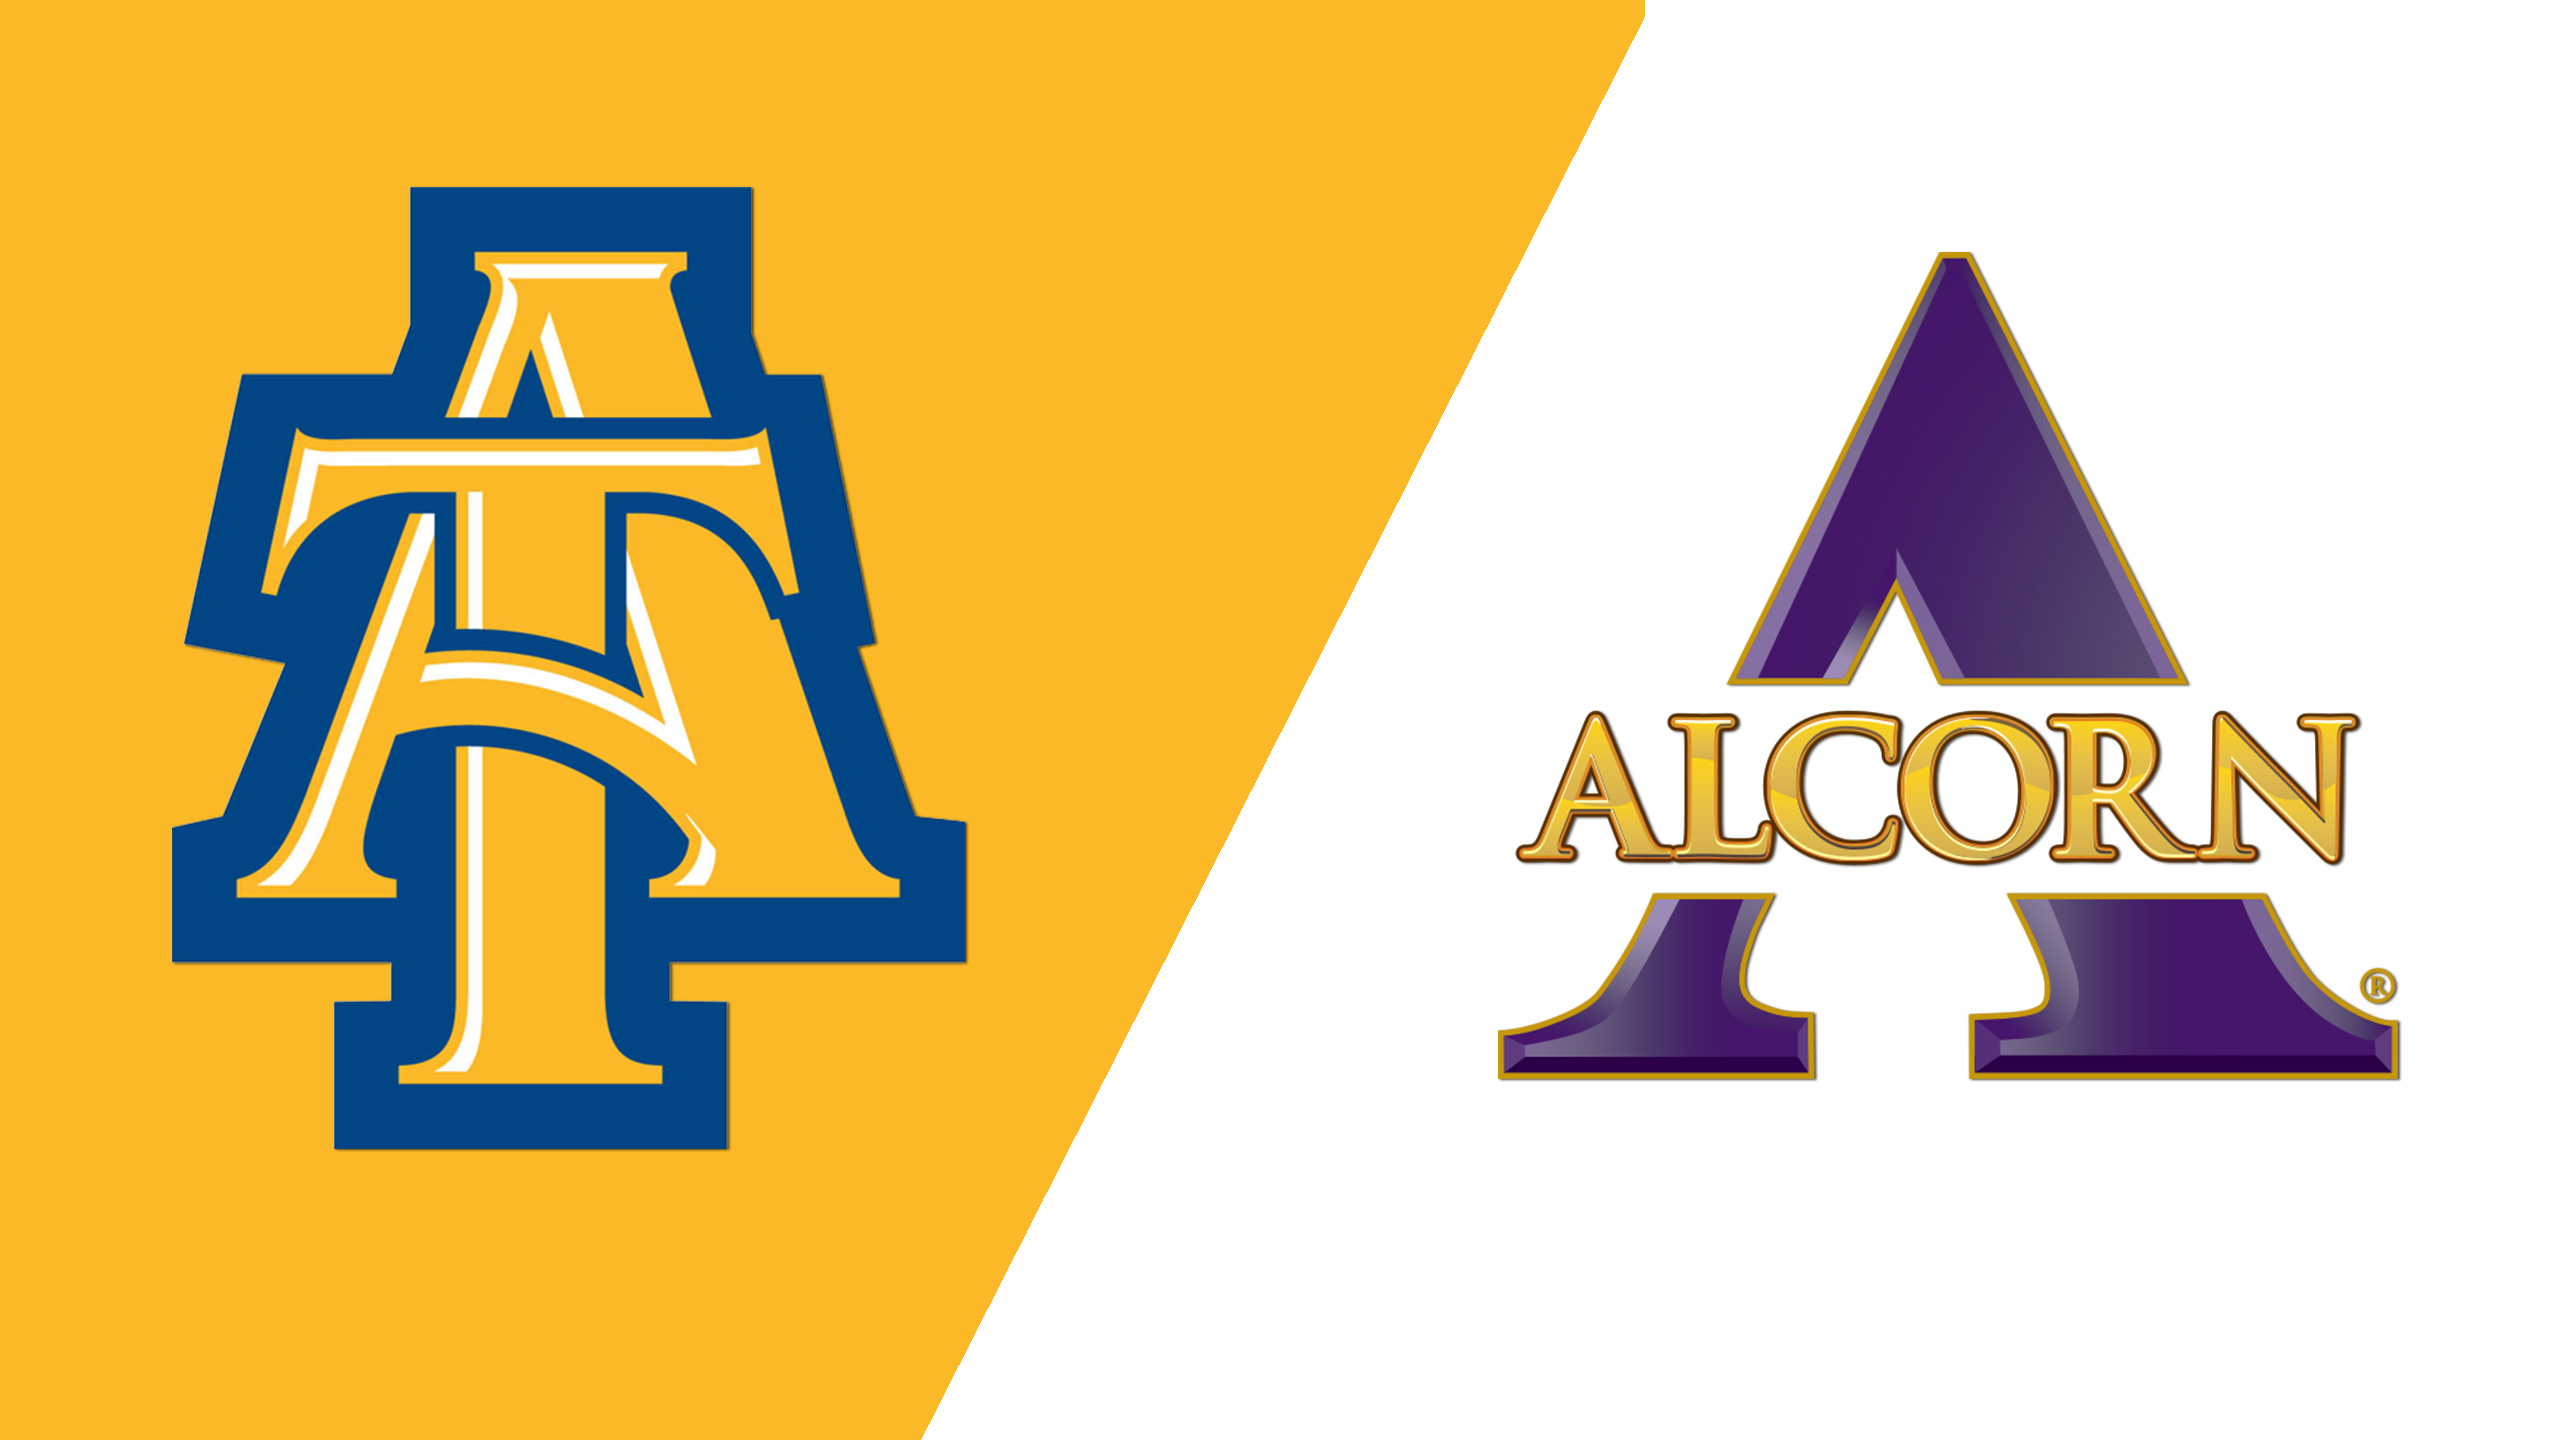 North Carolina A&T vs. Alcorn State (Air Force Reserve Celebration Bowl)